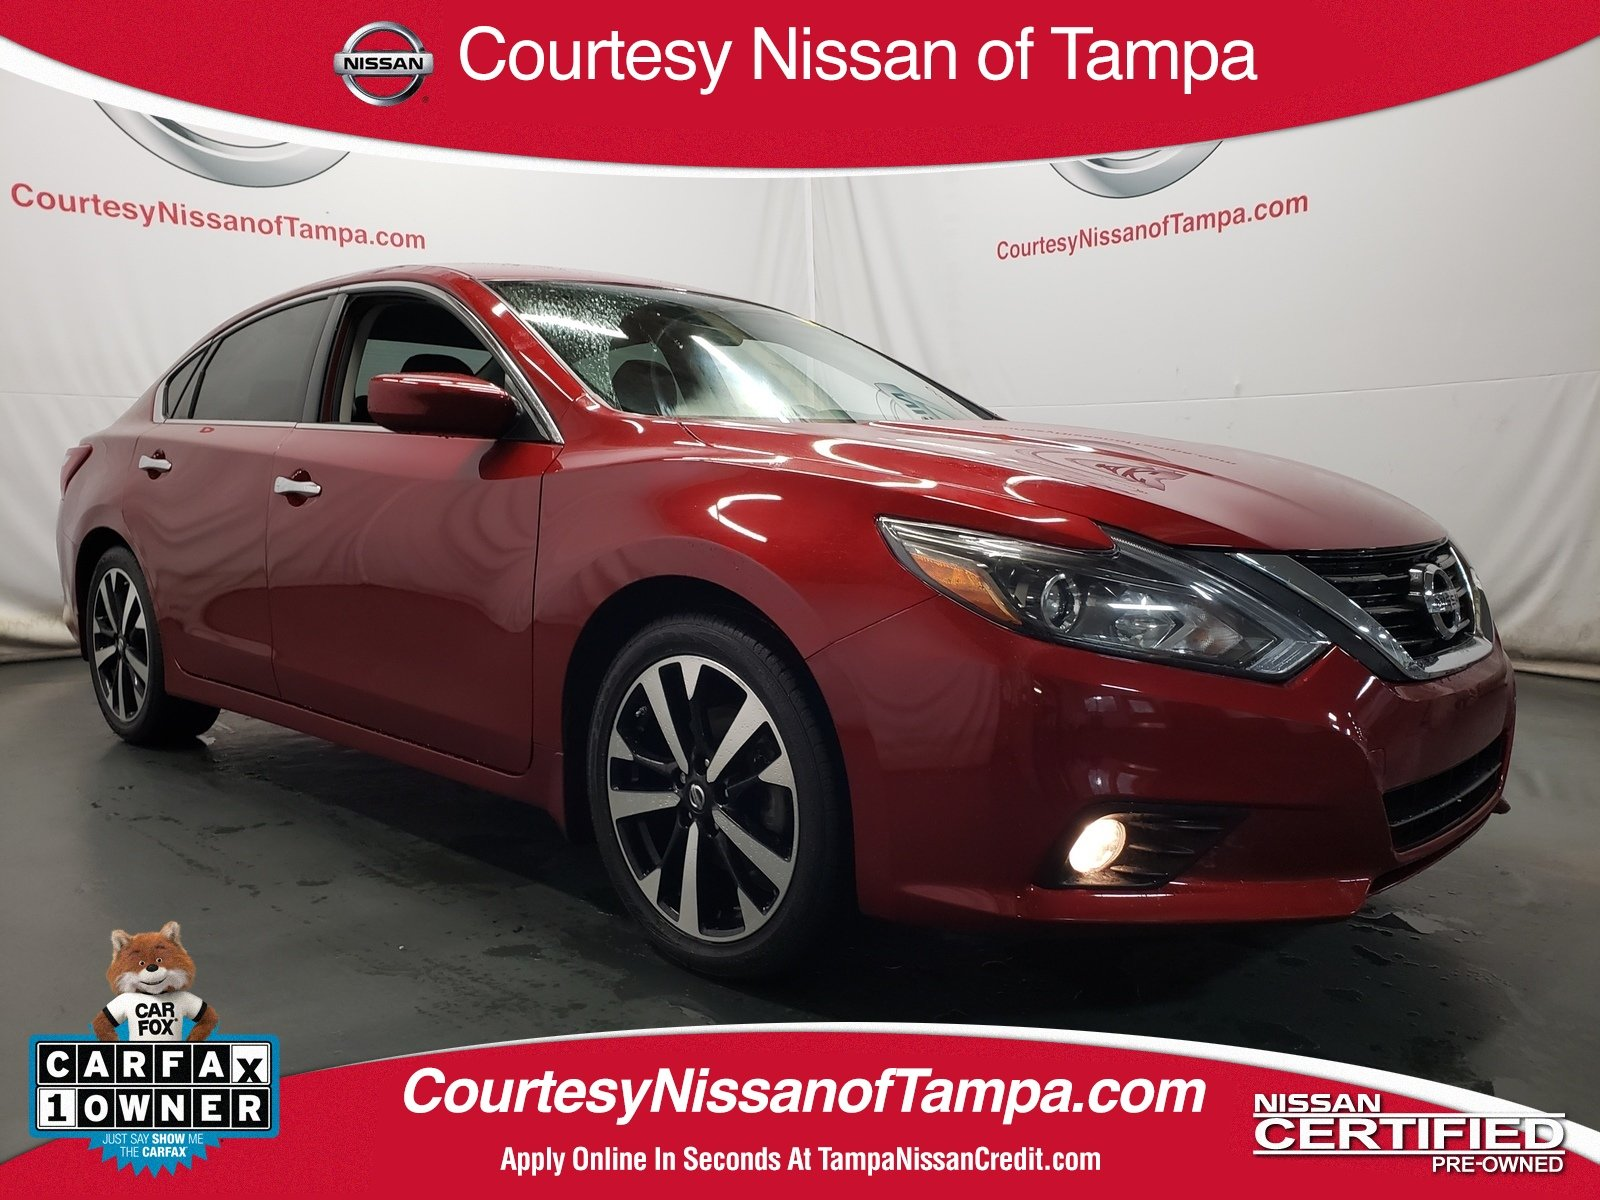 Used Cars Tampa >> Nissan Certified Pre Owned Vehicle Specials Used Car Deals In